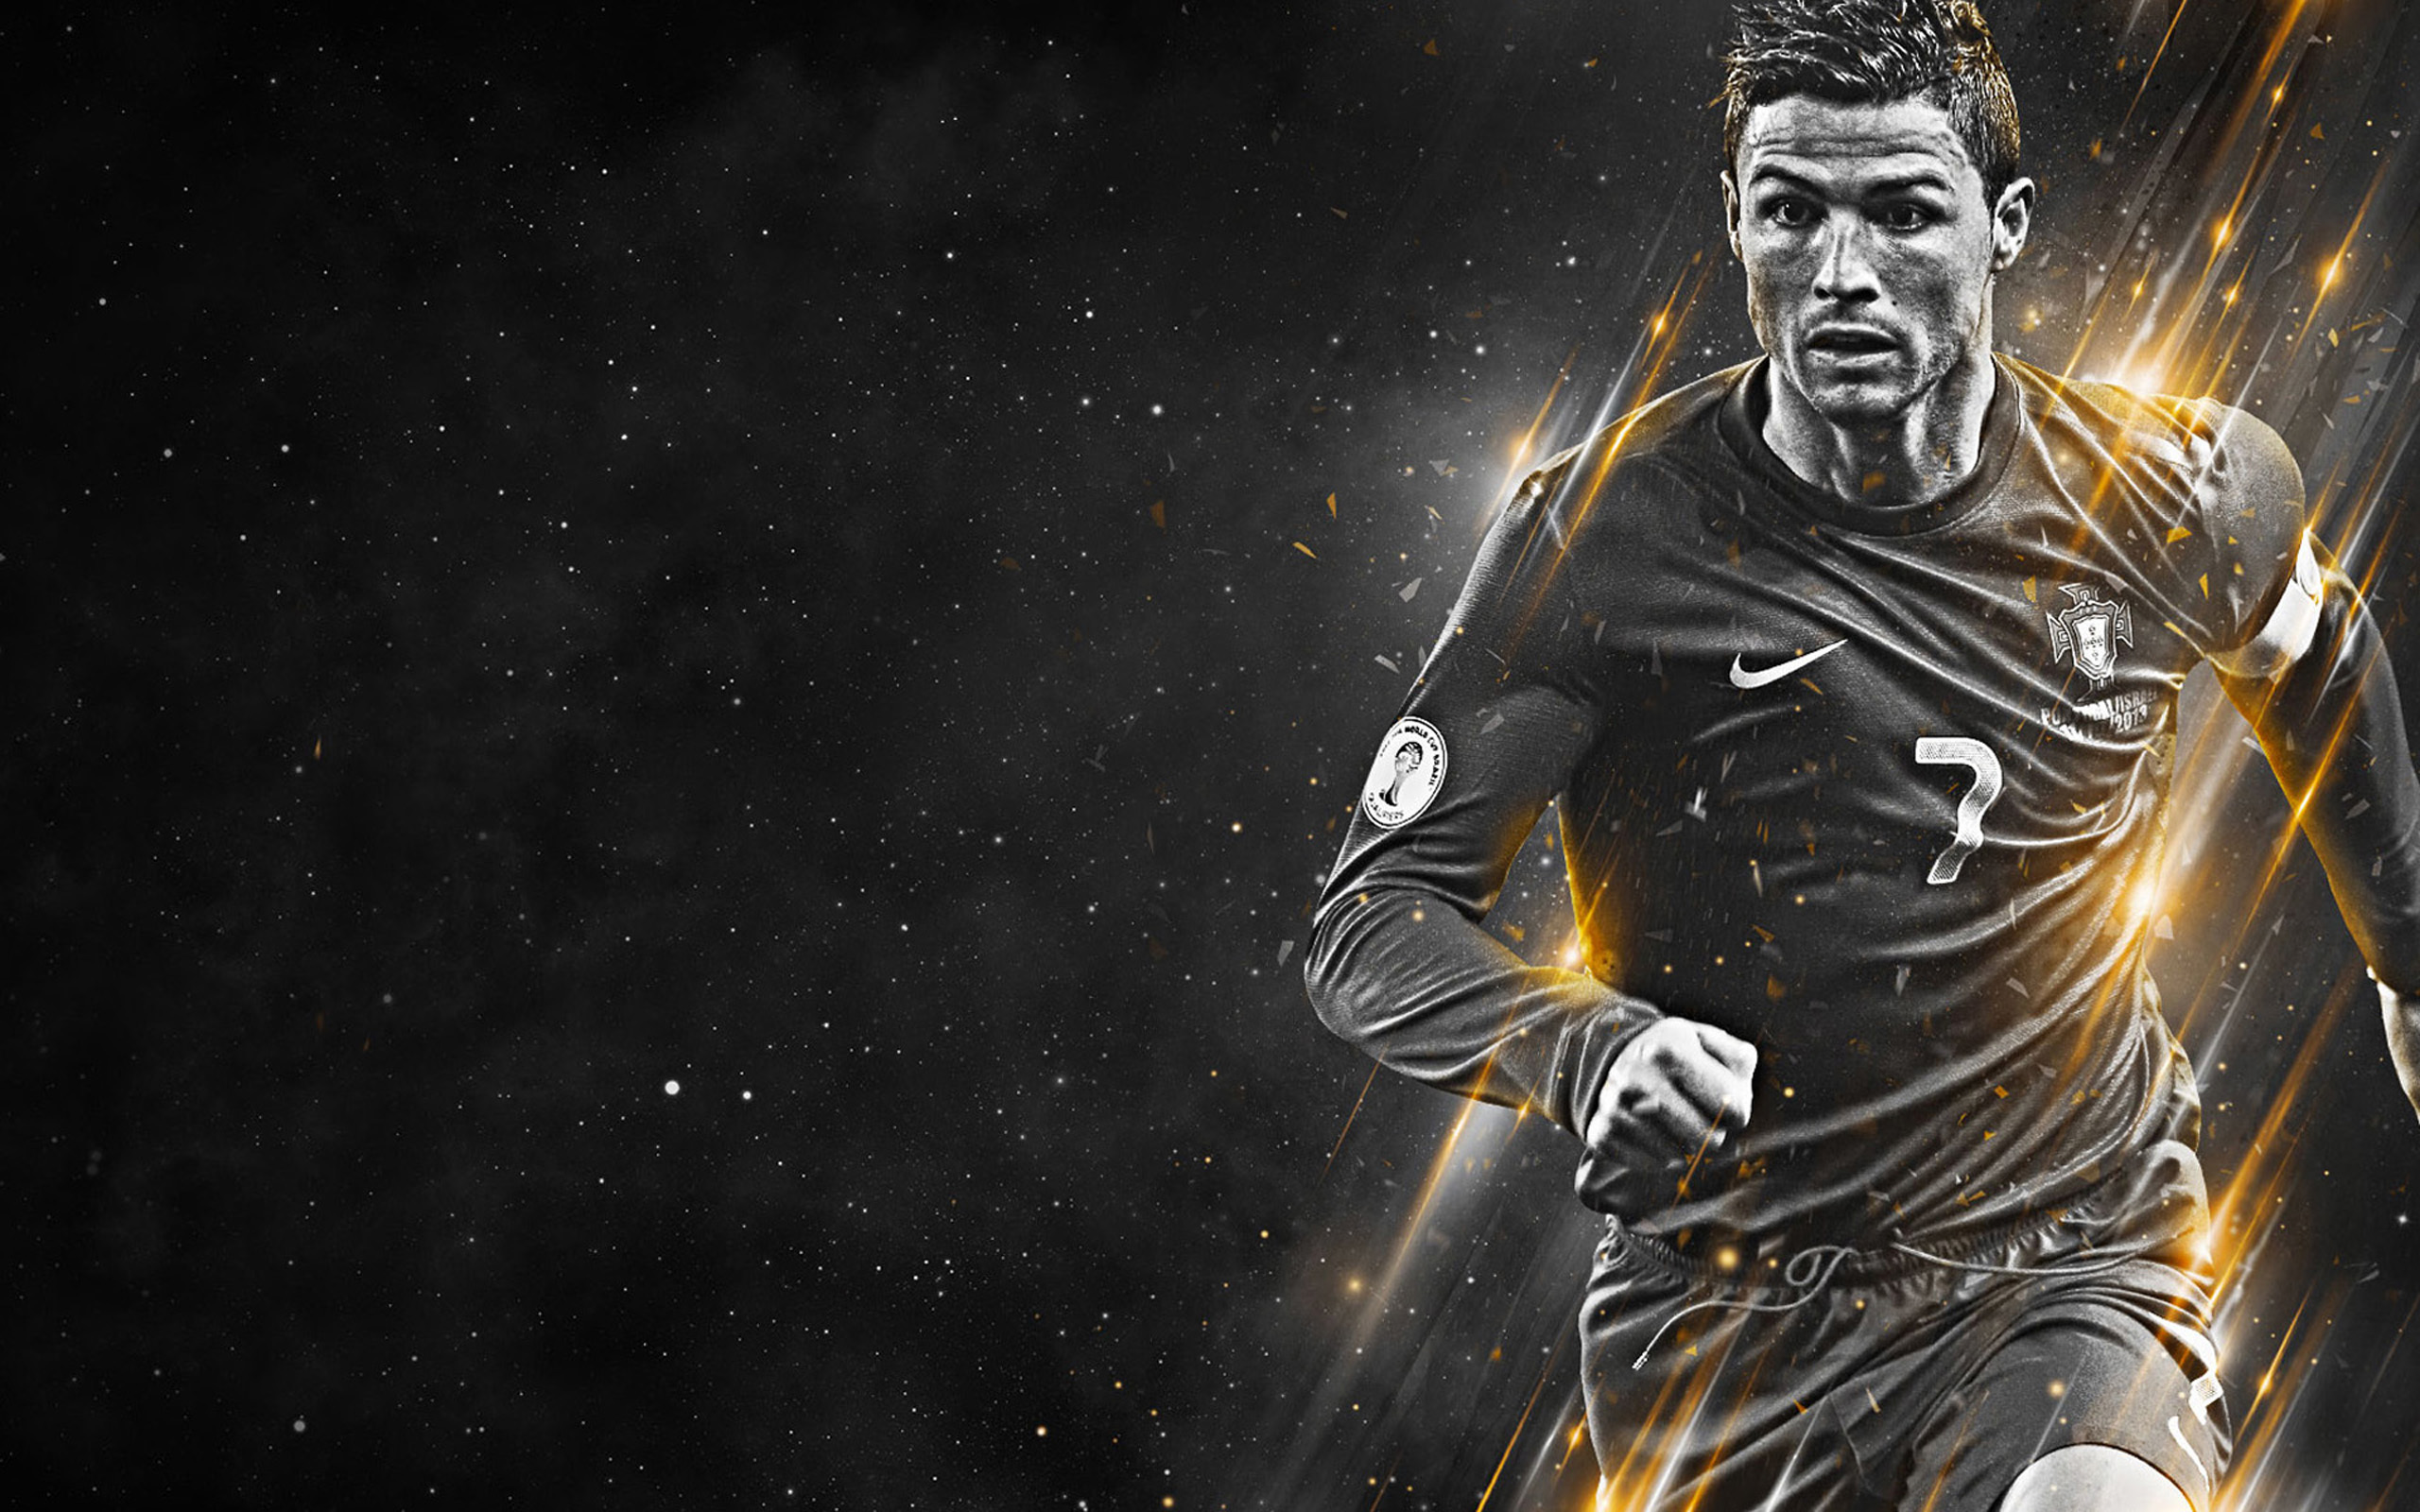 59 cristiano ronaldo hd wallpapers background images wallpaper hd wallpaper background image id614633 2560x1600 sports cristiano ronaldo voltagebd